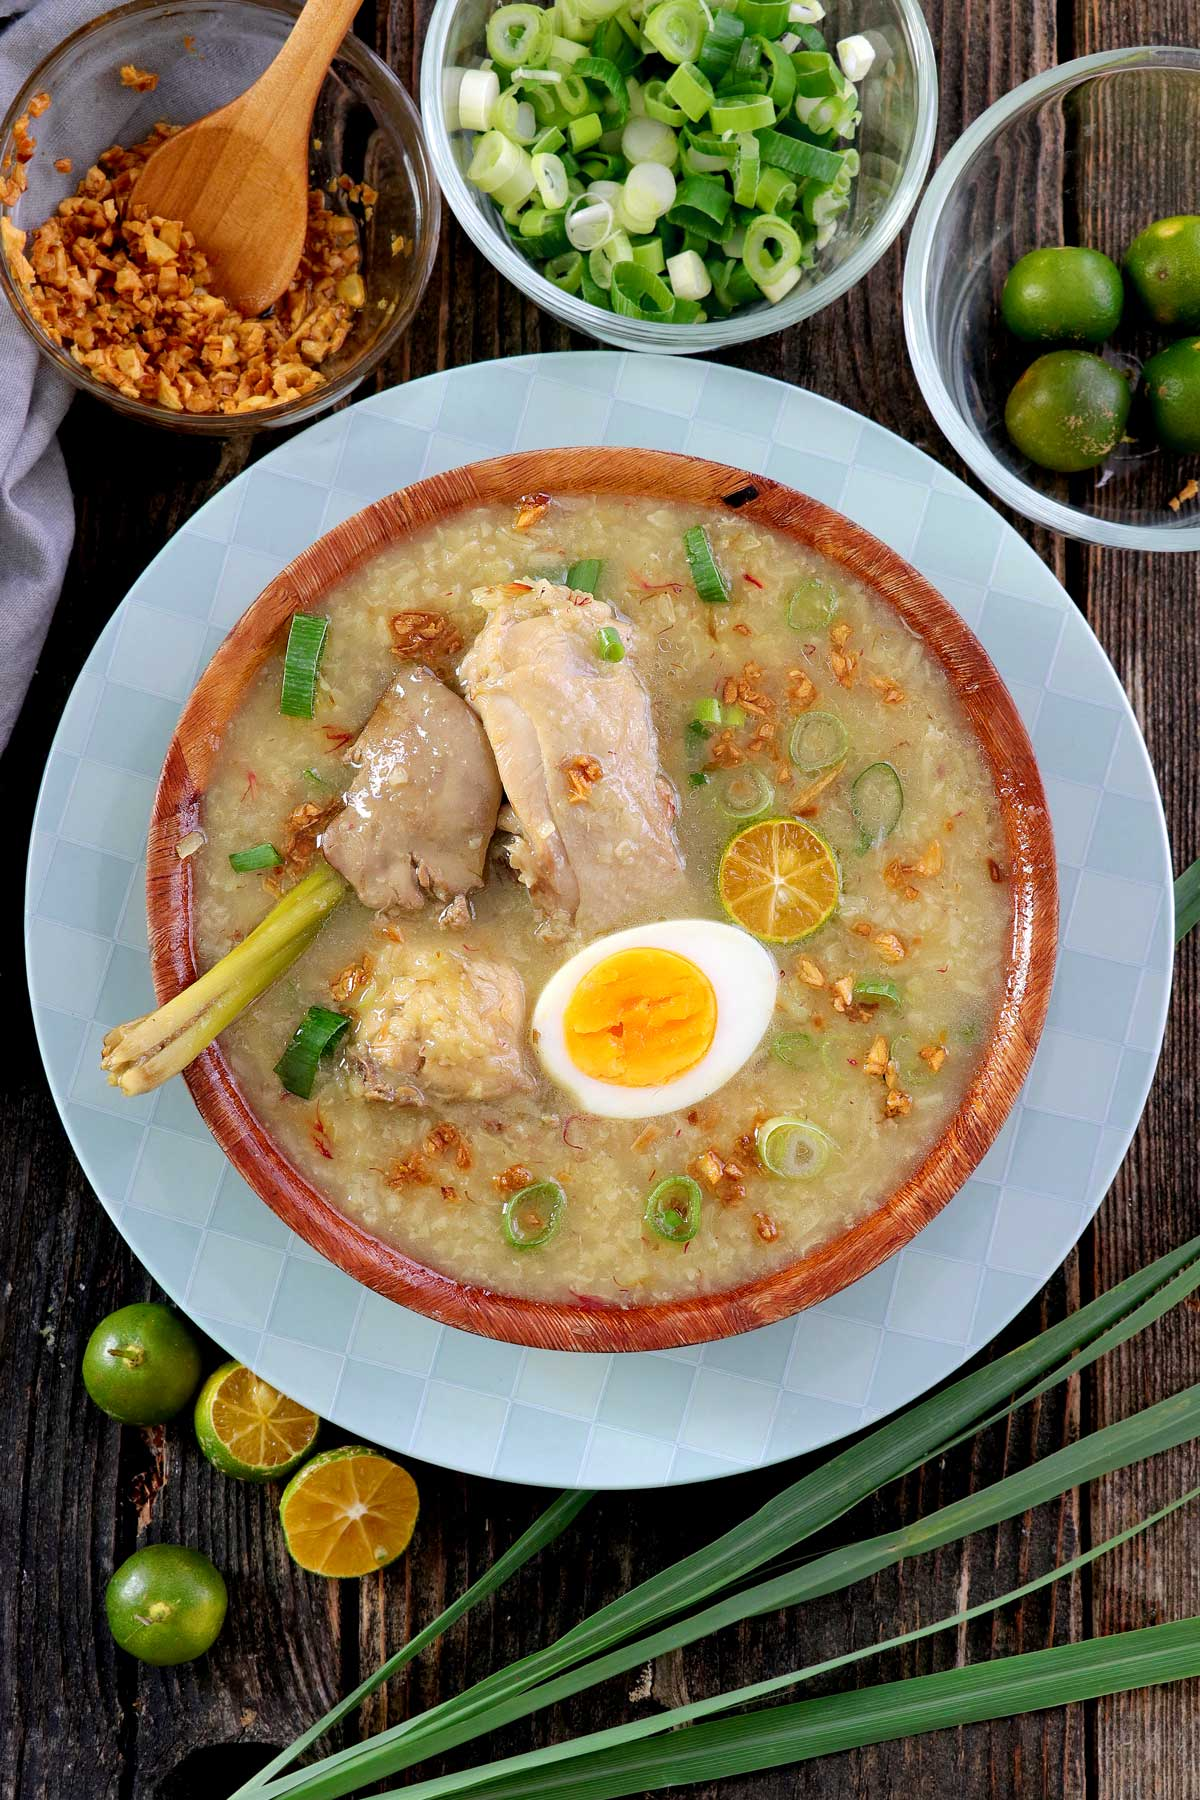 Arroz Caldo or Chicken Rice Porridge